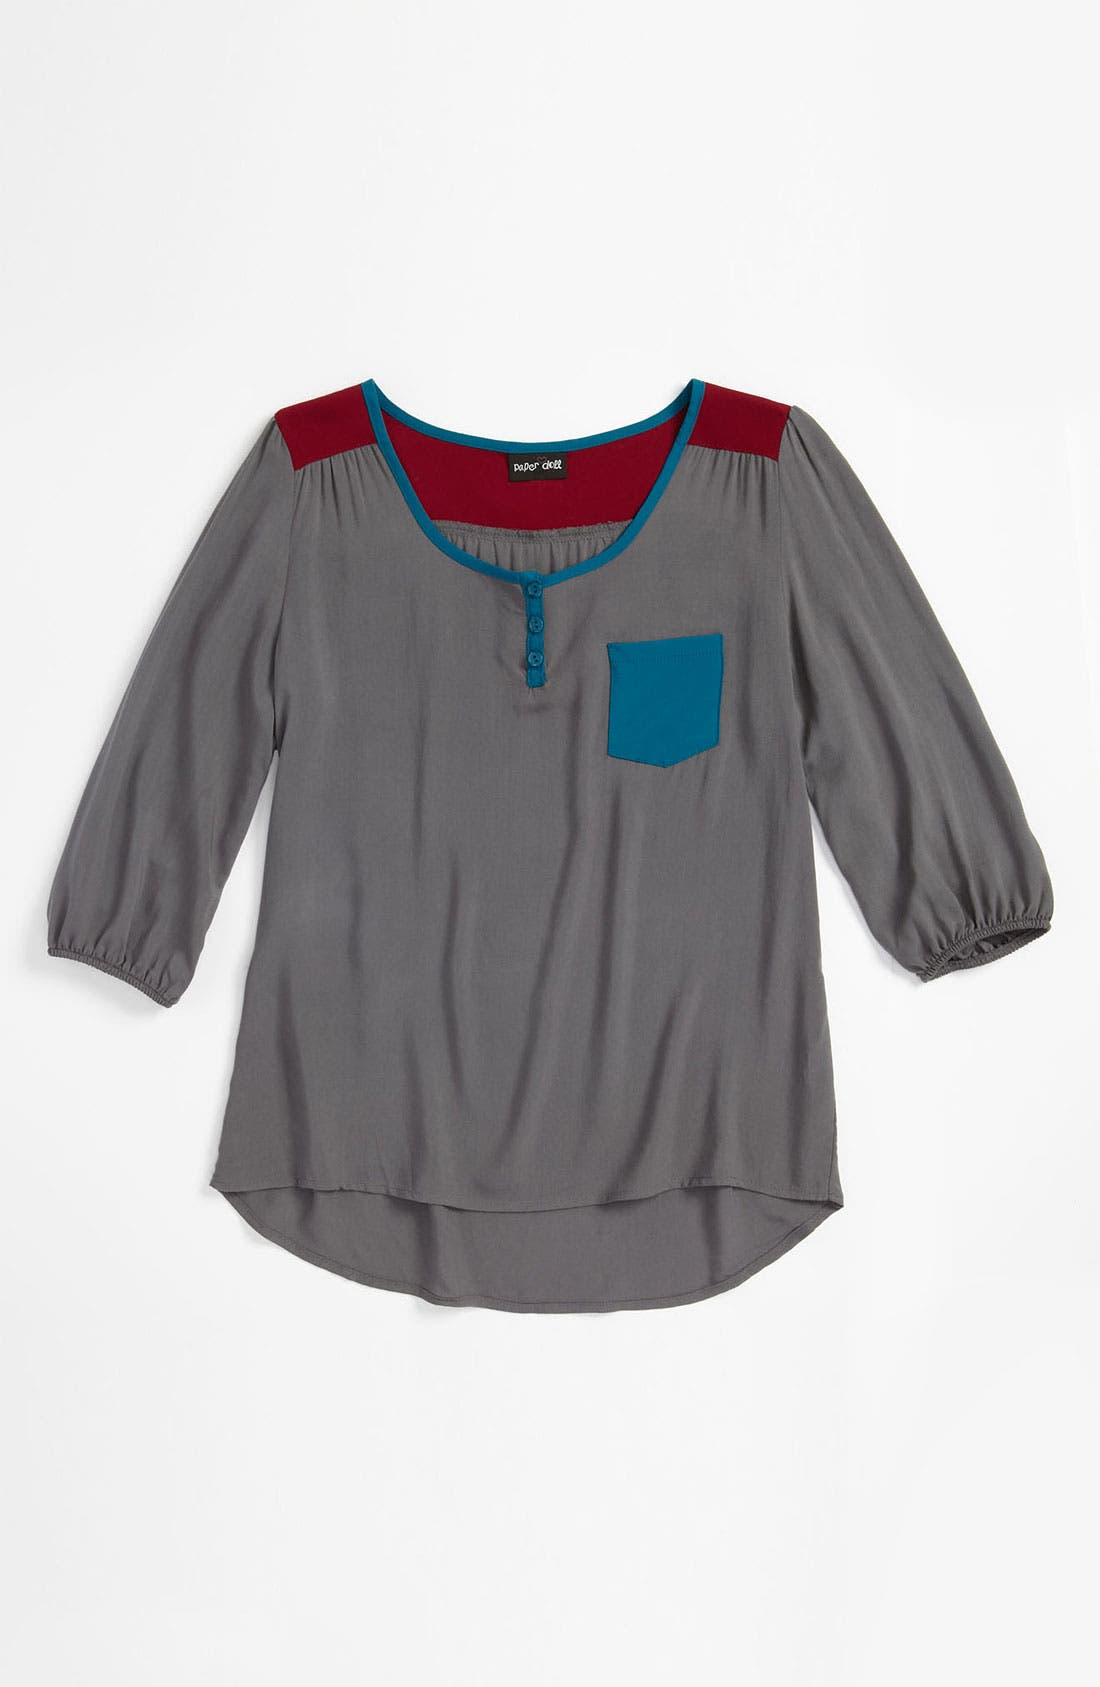 Alternate Image 1 Selected - Paper Doll Colorblock Top (Big Girls)